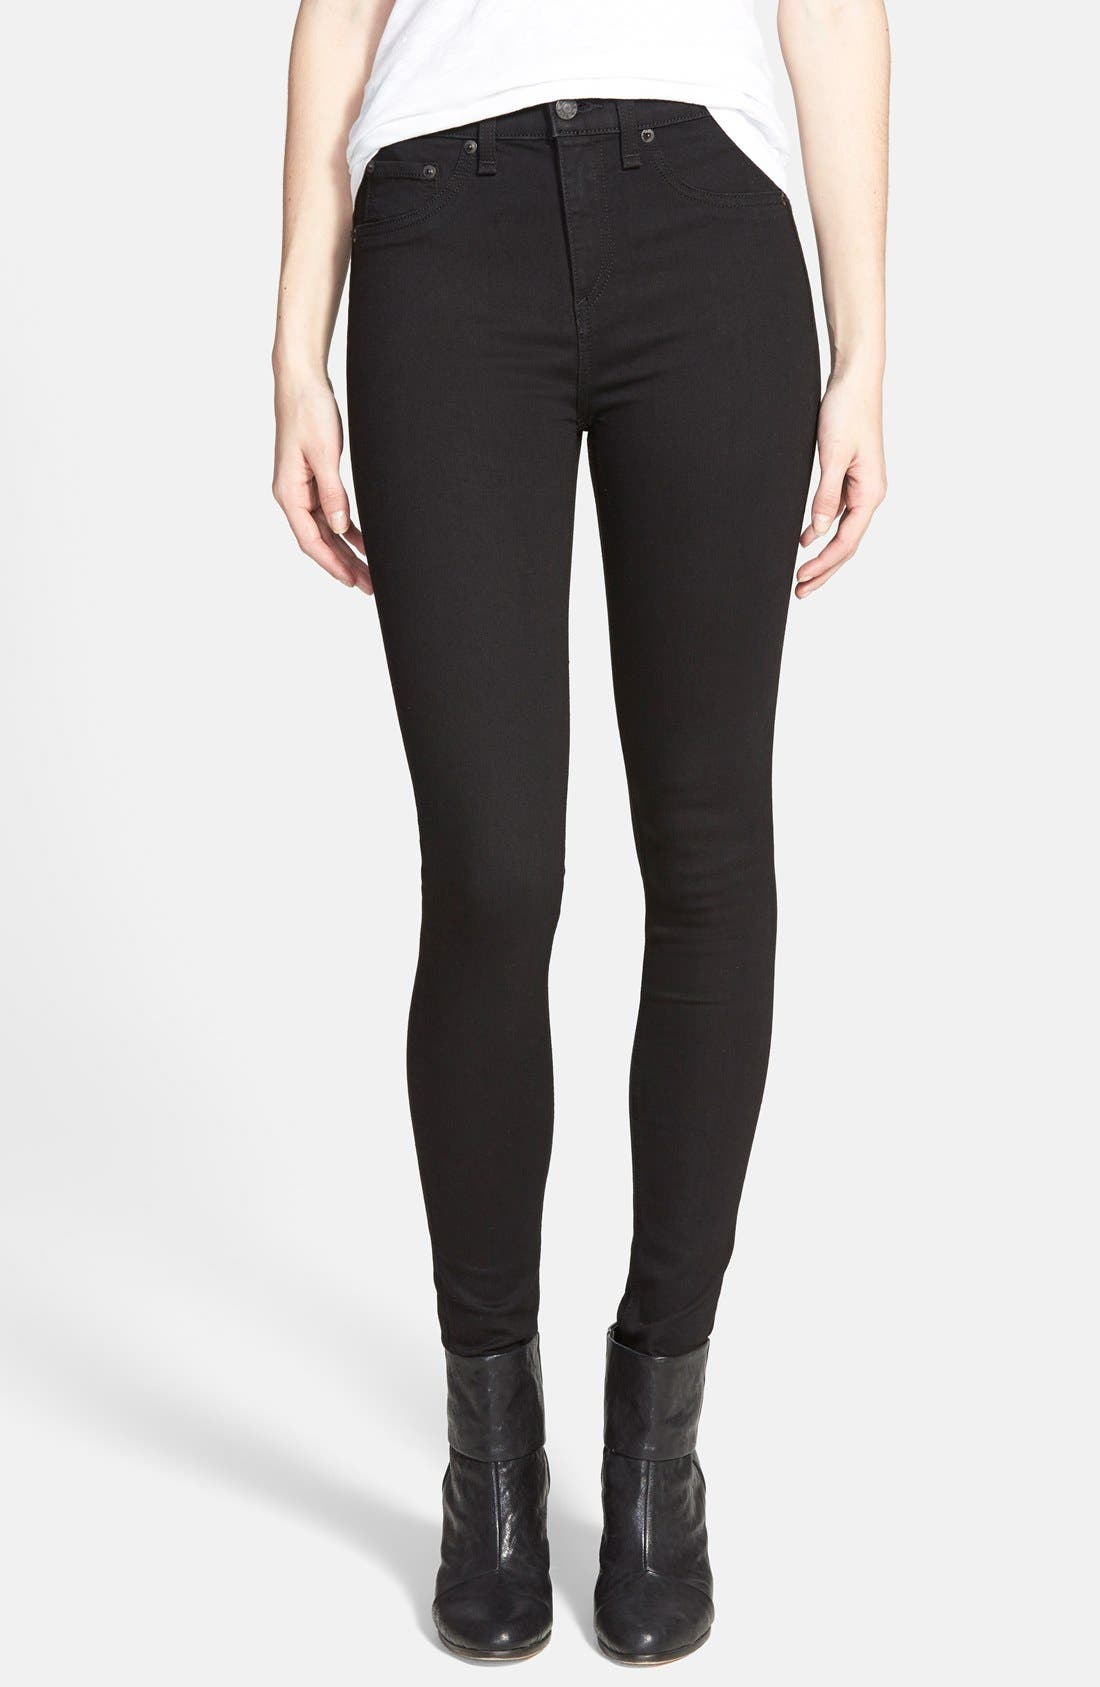 Alternate Image 1 Selected - rag & bone/JEAN High Waist Leggings (Black)